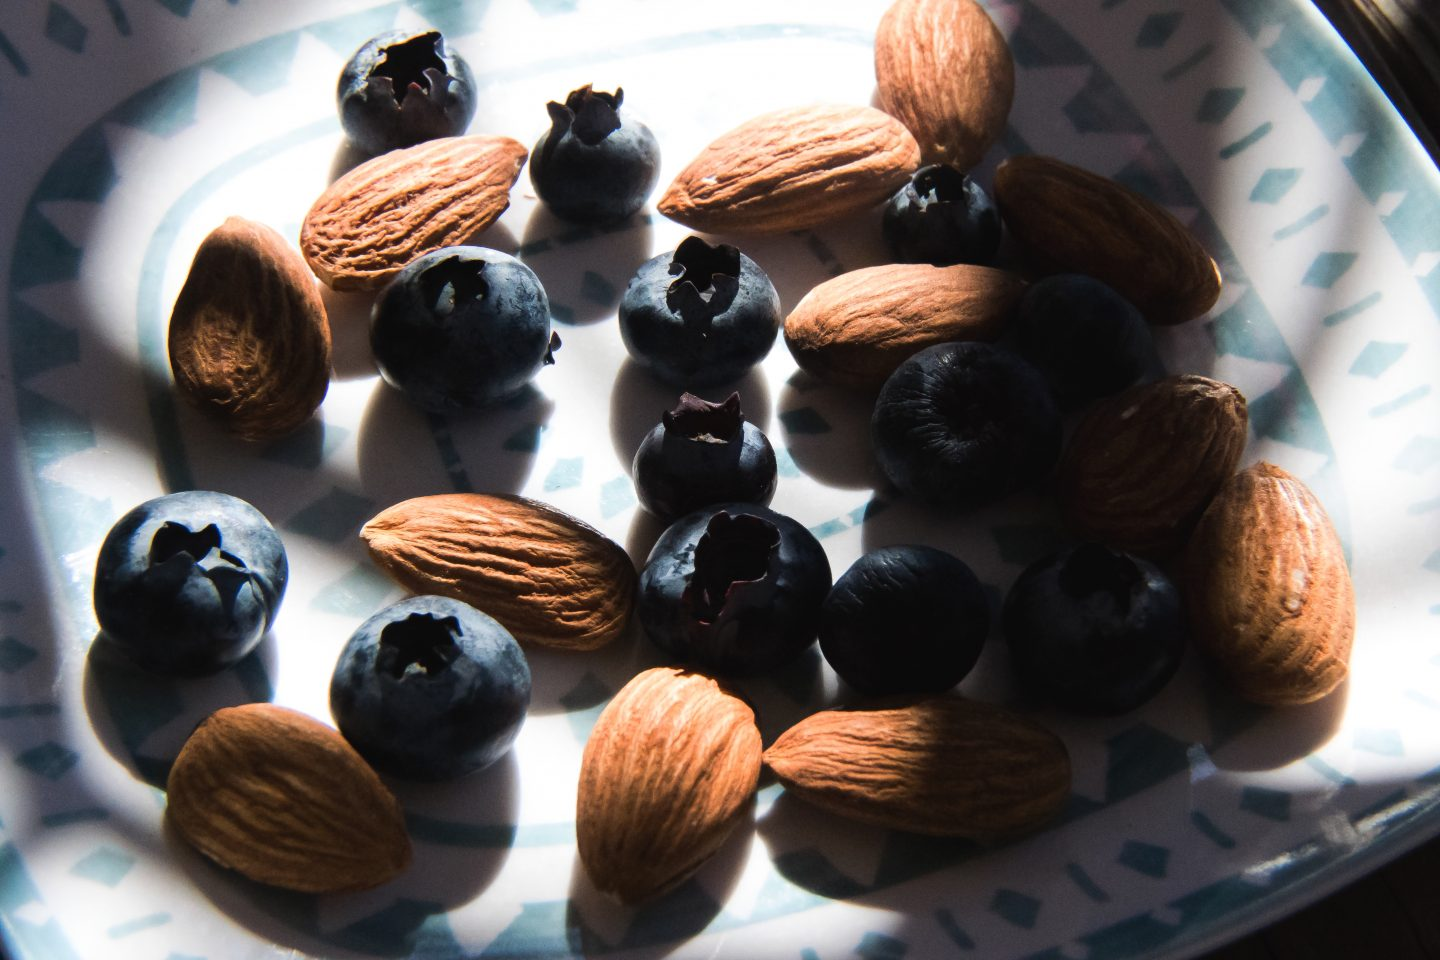 Close-Up Of Almonds And Blueberries On Plate